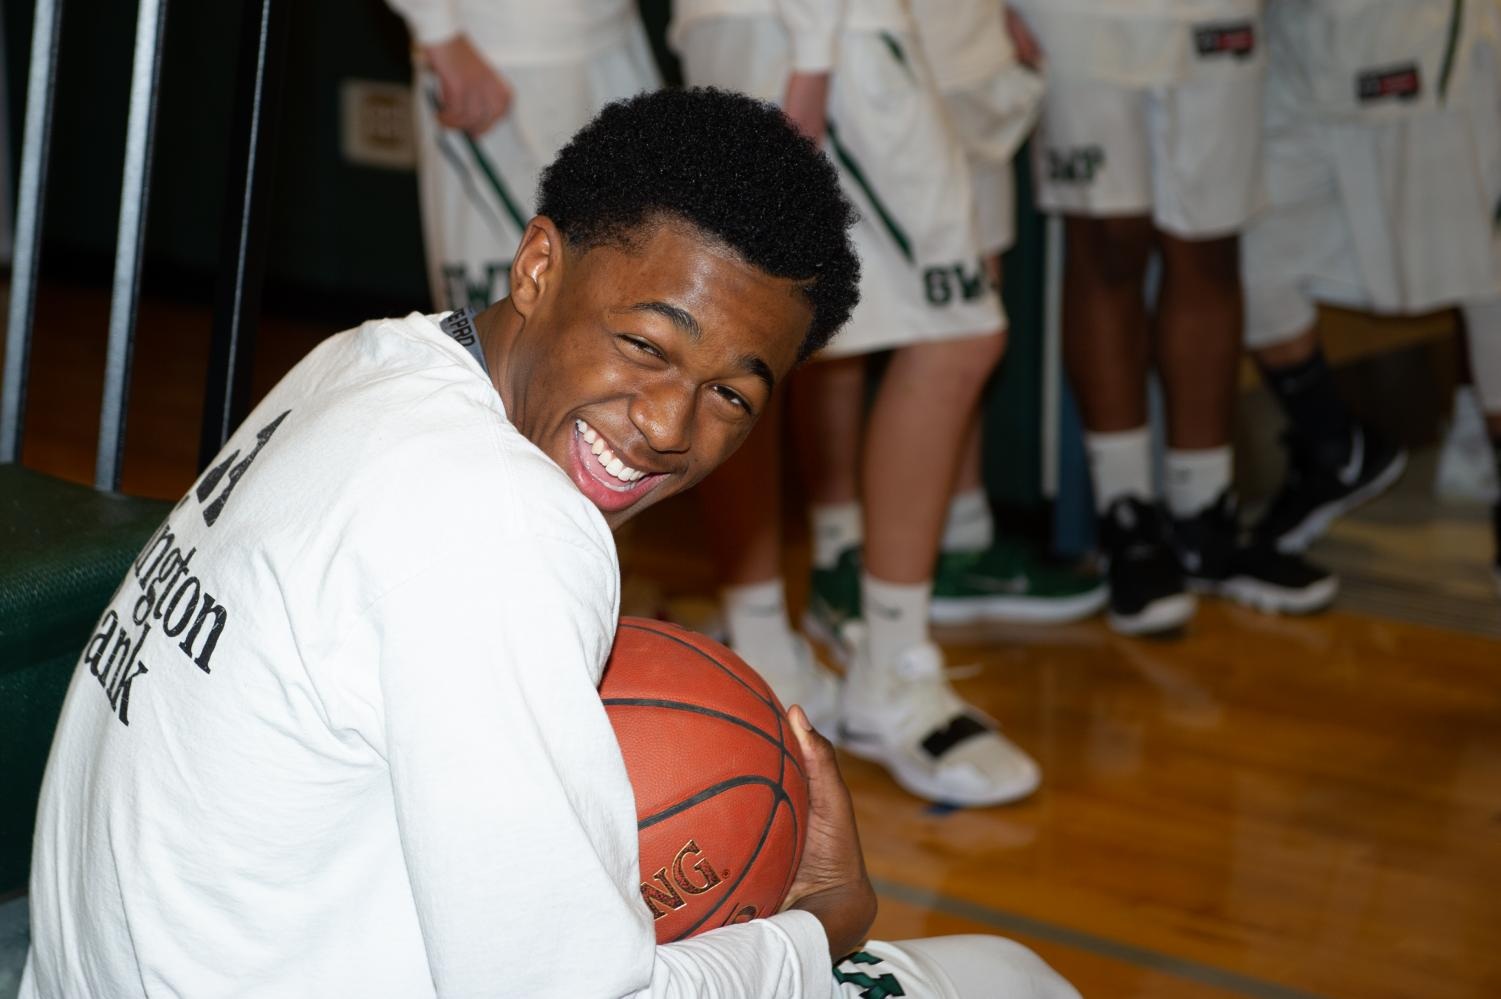 On Wednesday, February 20, 2019, senior Bryson Andrews set a new point record at Abington High School in Boys Basketball